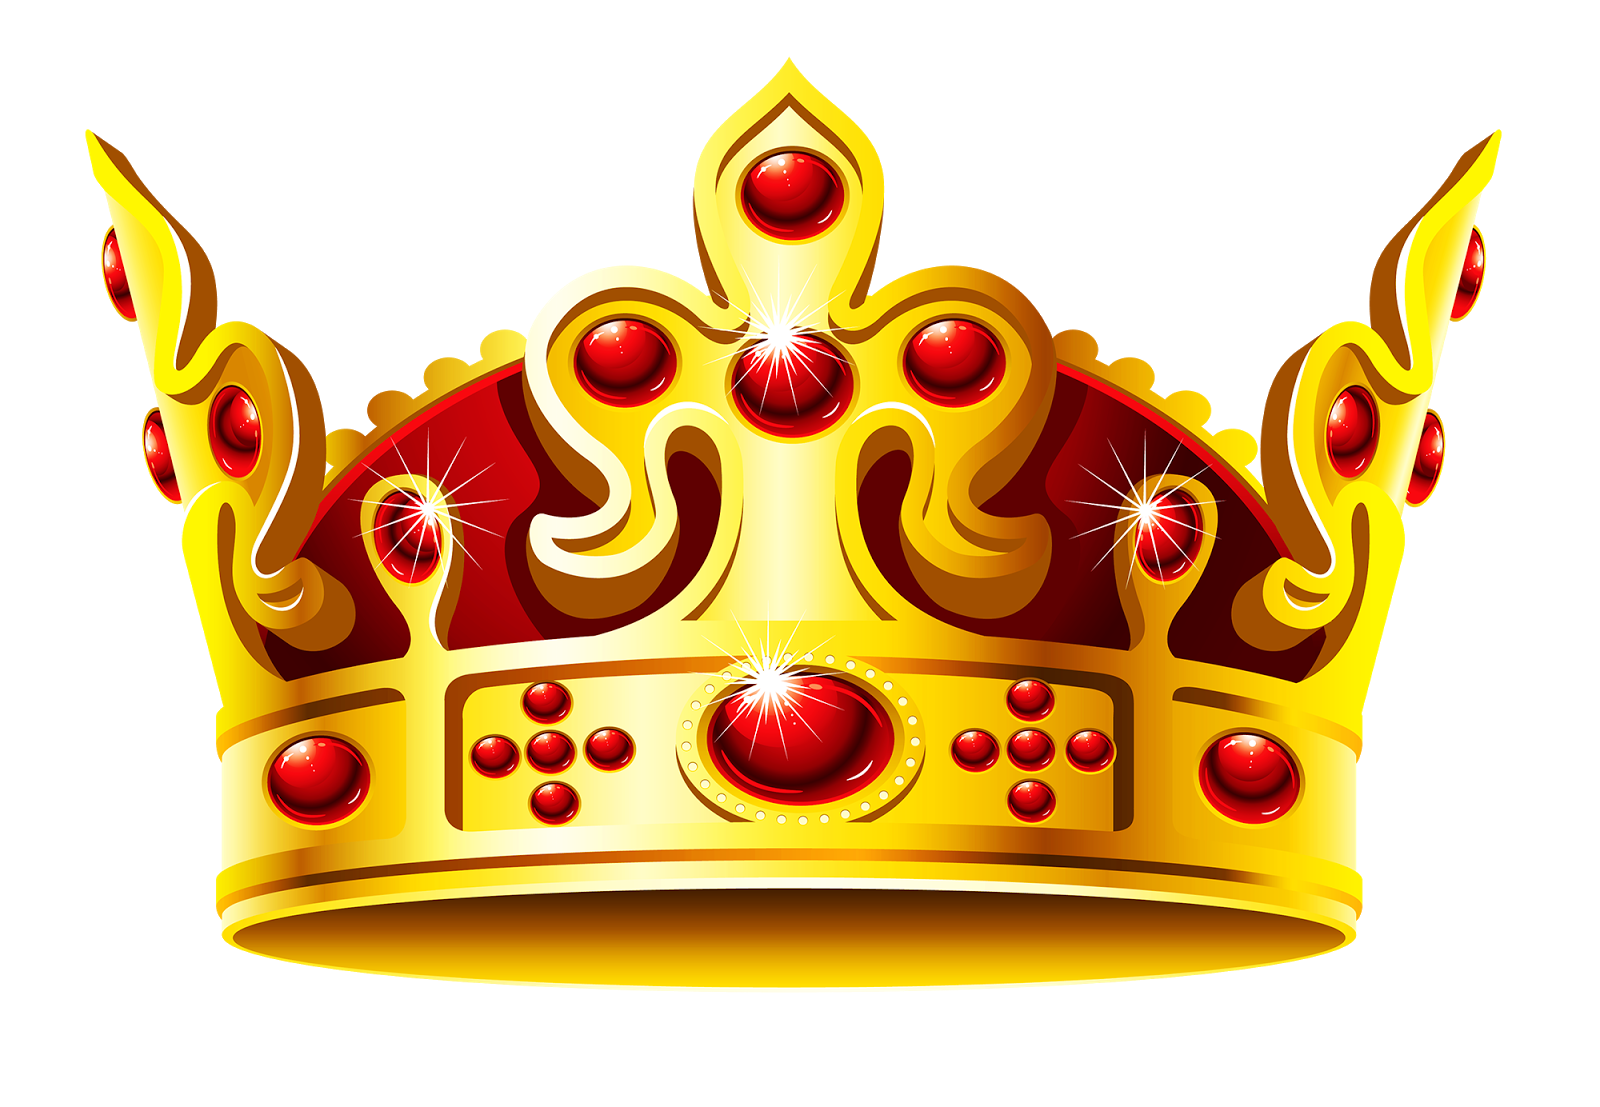 Man crown clipart svg stock Crown Clipart at GetDrawings.com | Free for personal use Crown ... svg stock